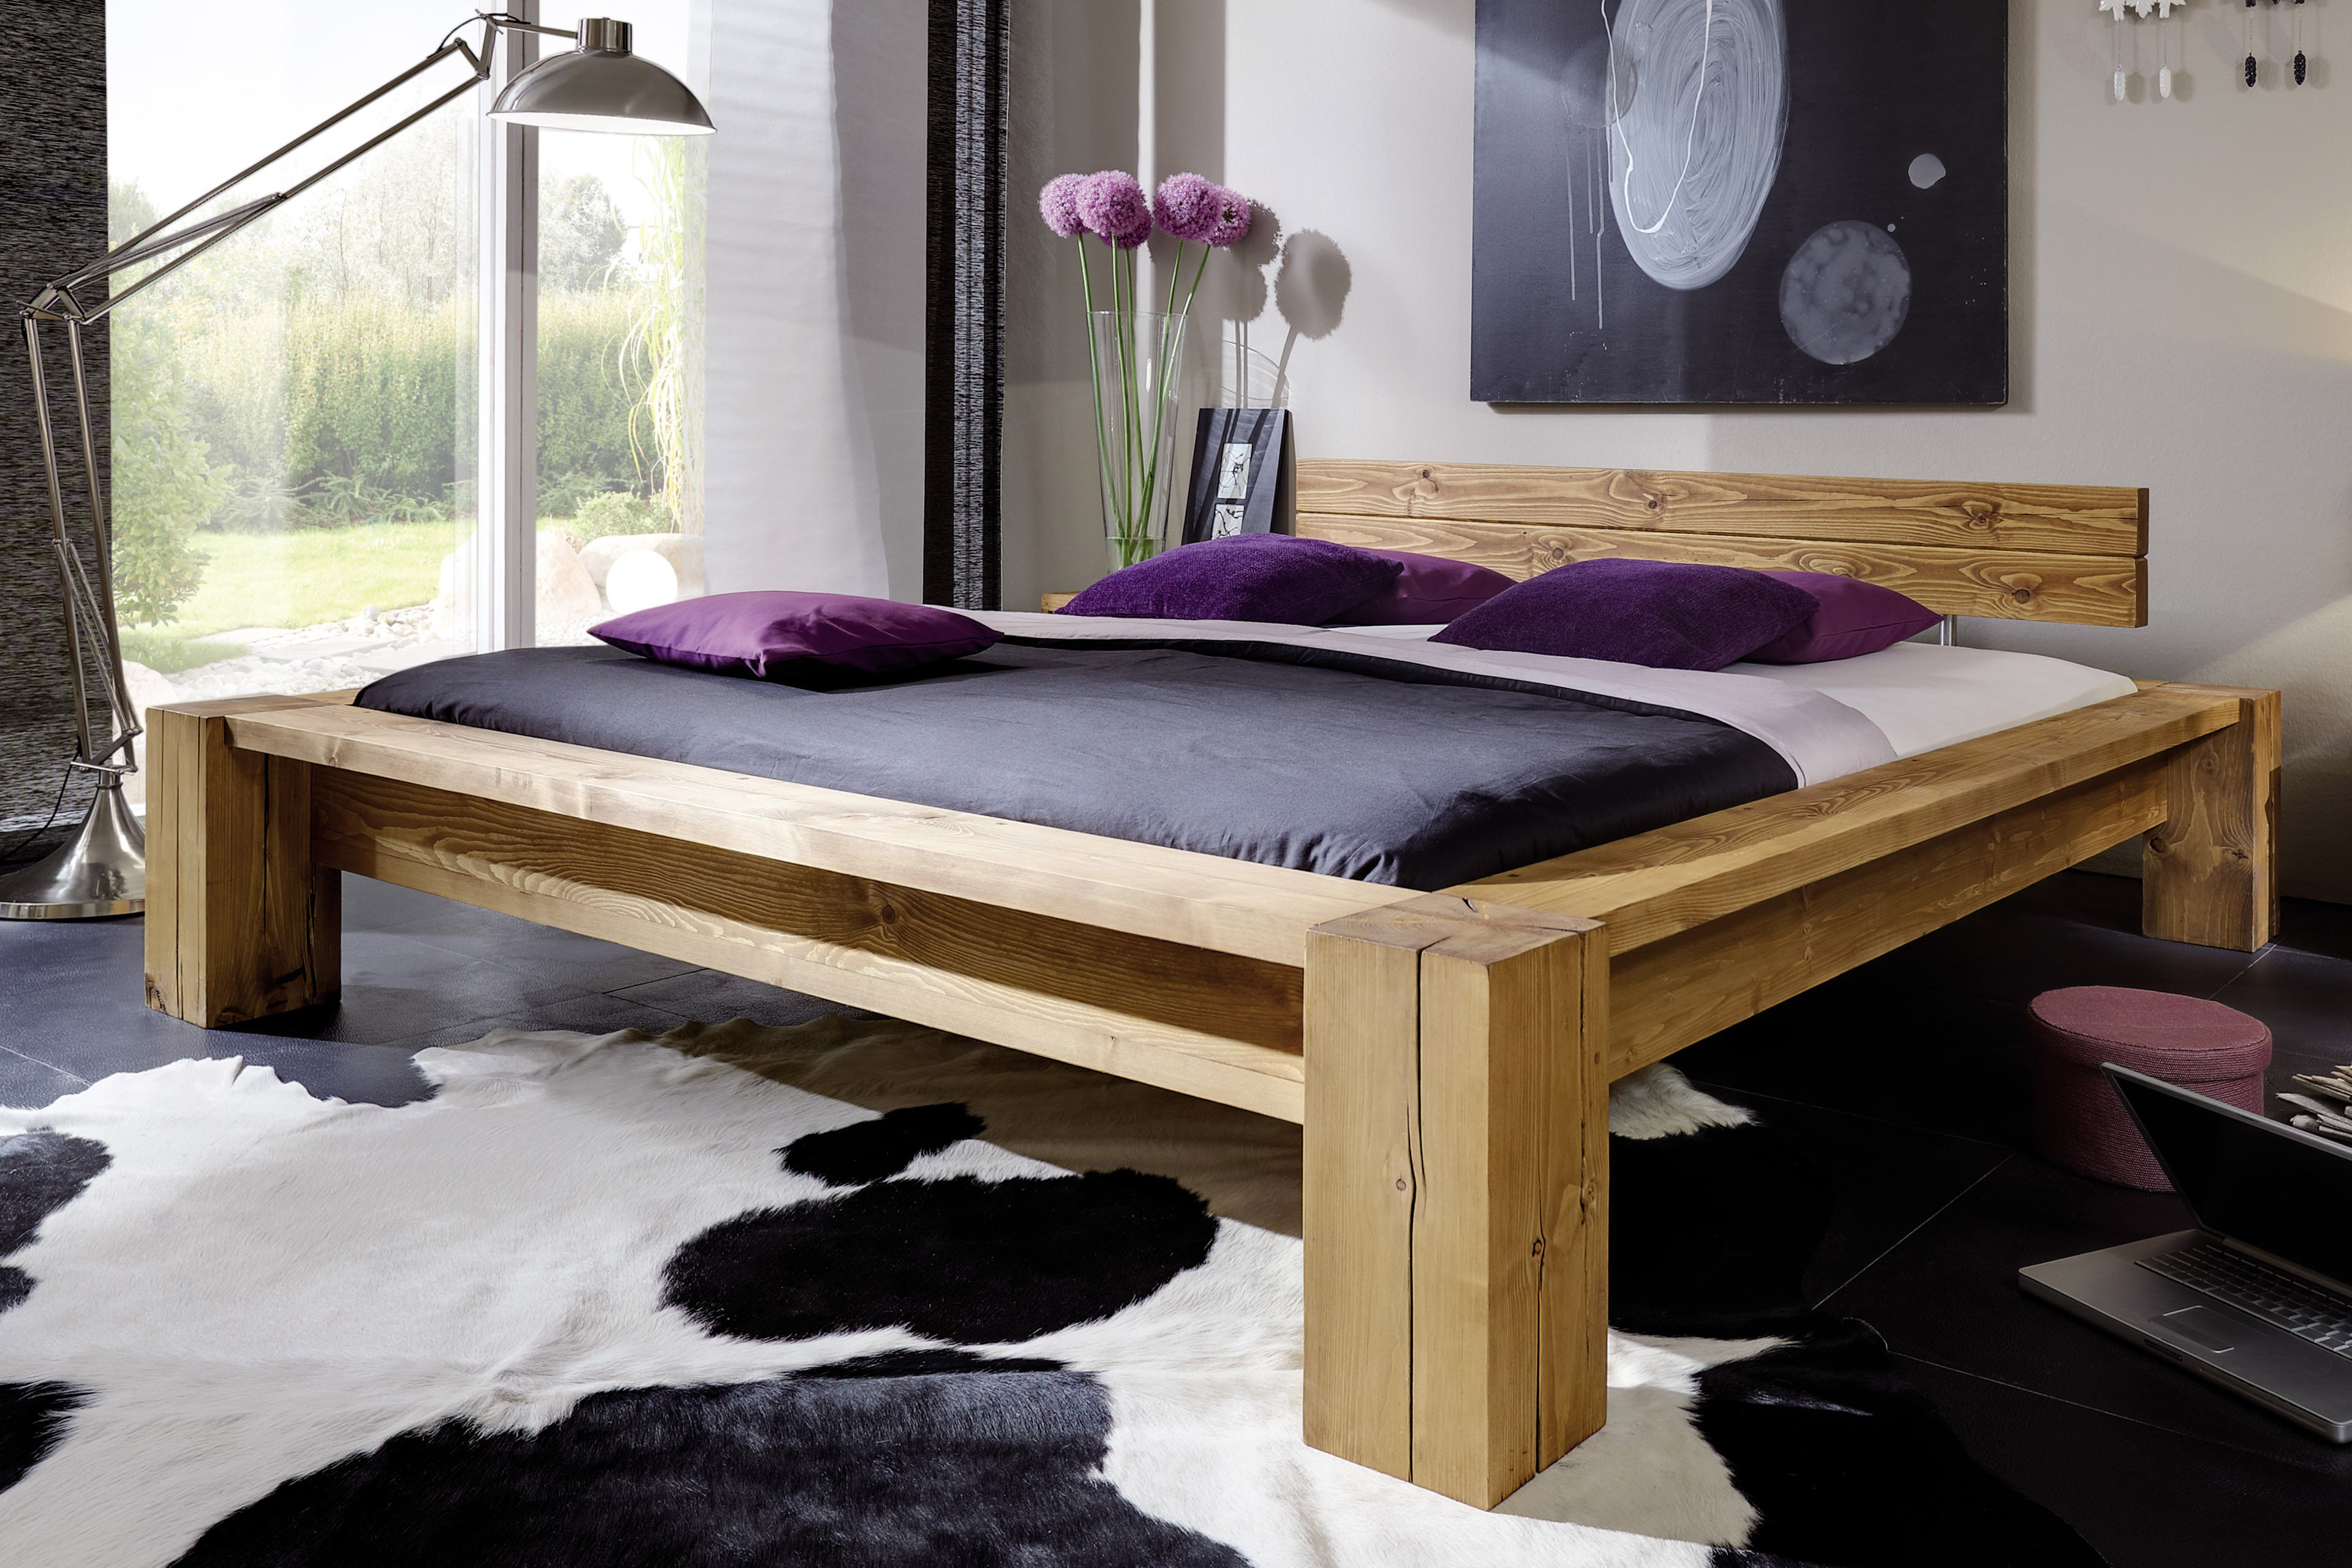 200x200 bett cheap genial bett wei x with 200x200 bett. Black Bedroom Furniture Sets. Home Design Ideas